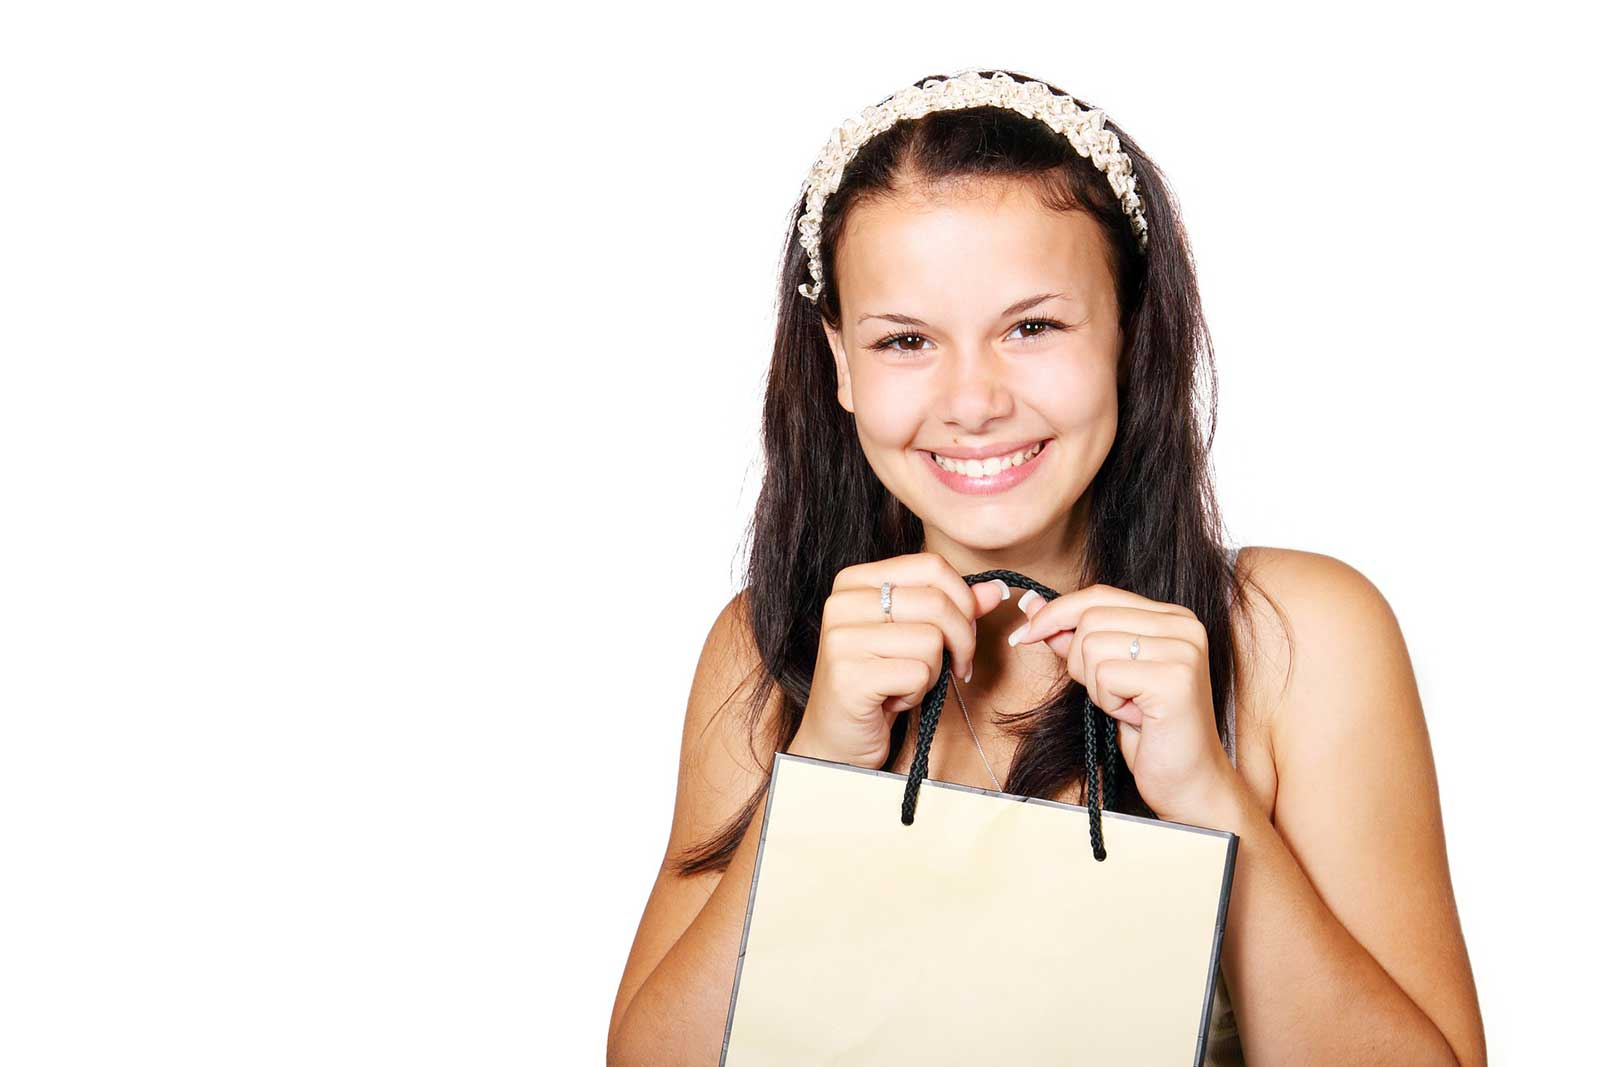 Happy Customers Mean More Profits for Your Business